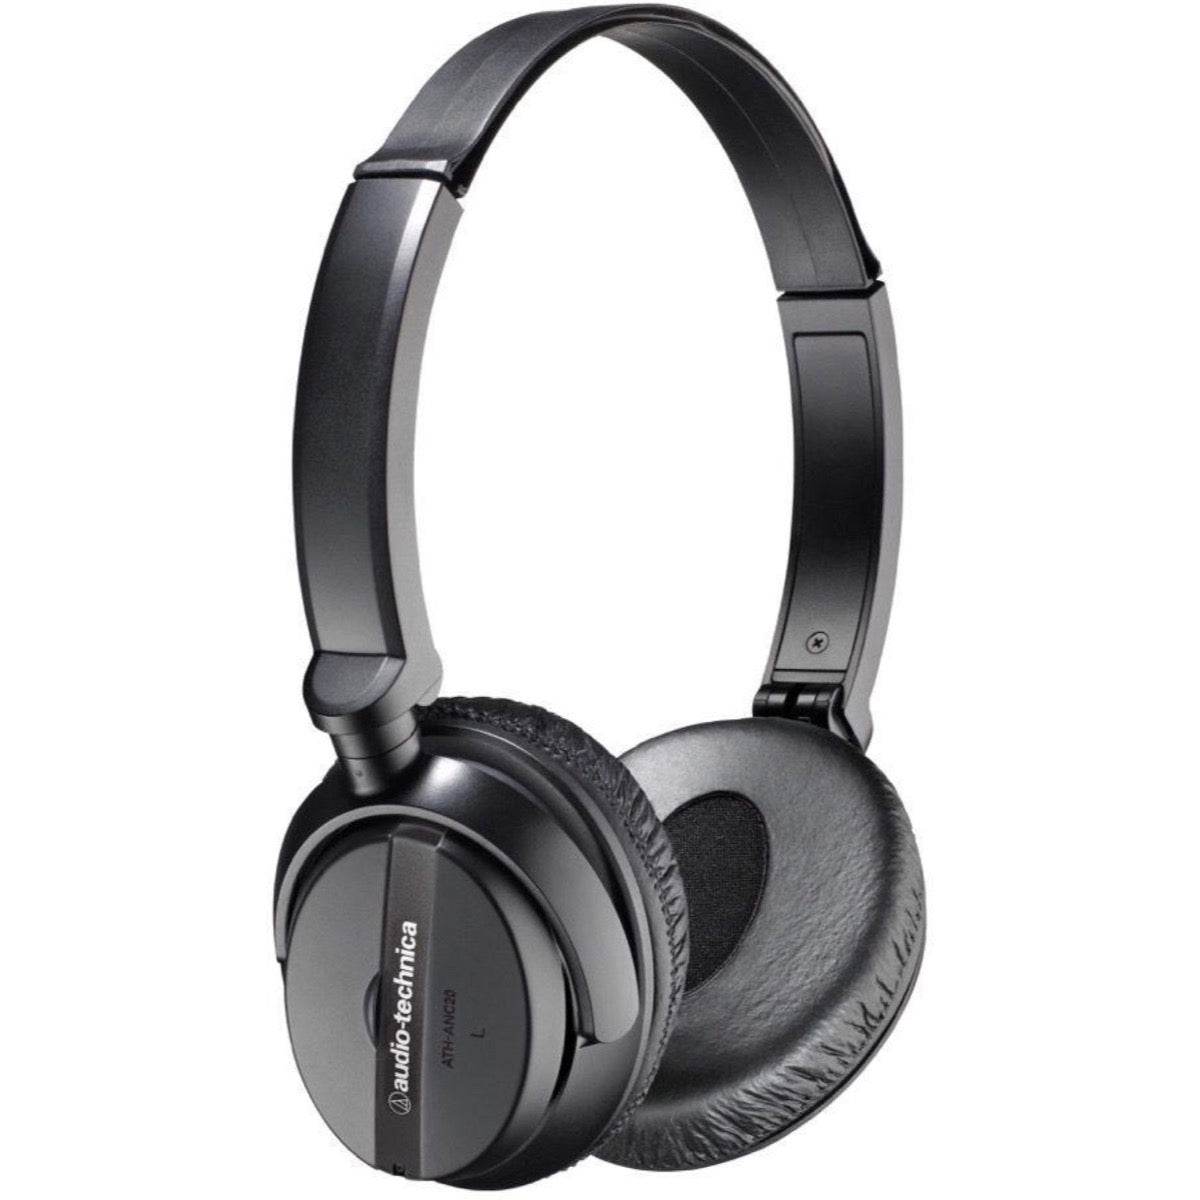 Audio-Technica ATH-ANC20 QuietPoint Noise-Cancelling Headphones